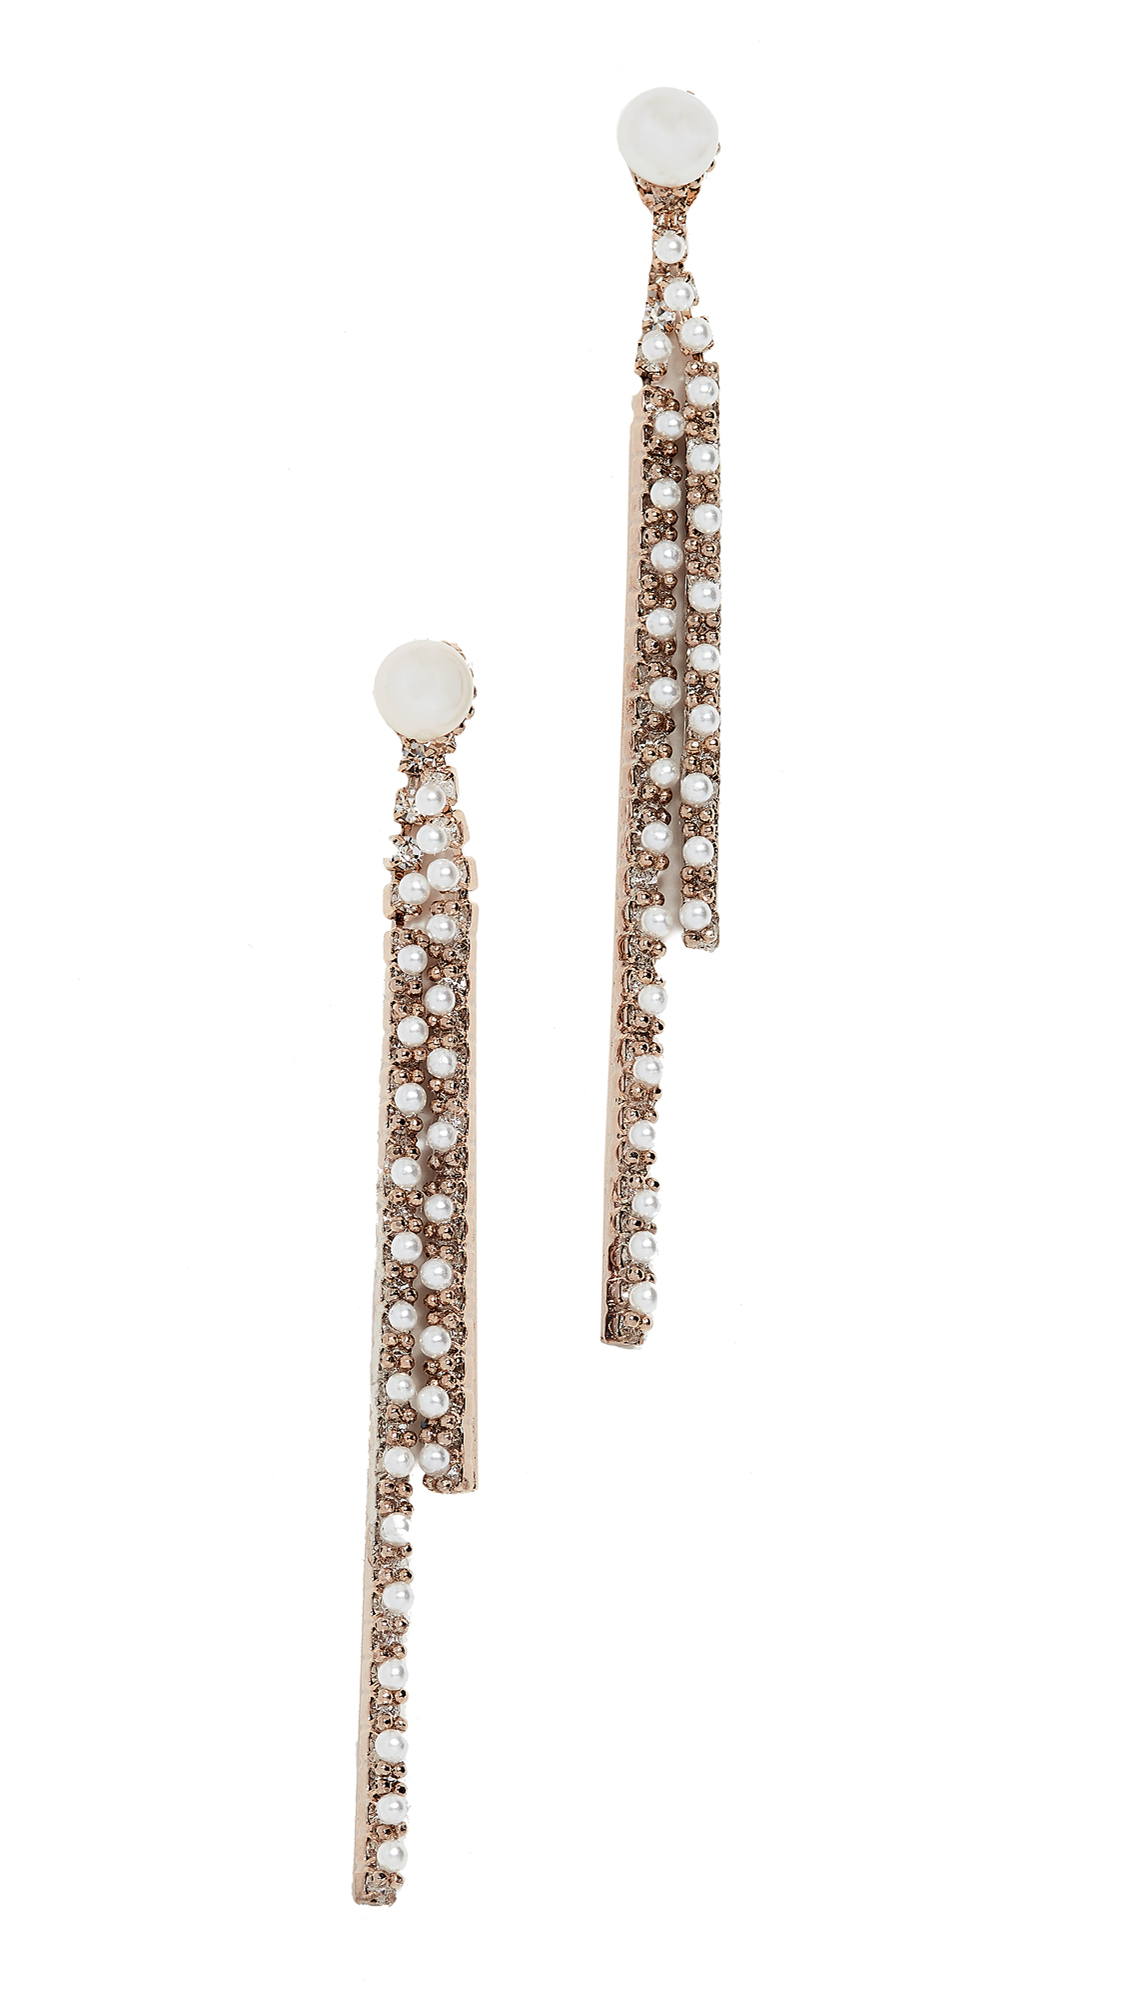 THEIA JEWELRY Freshwater Cultured Pearl Earrings in Pearl/Cz